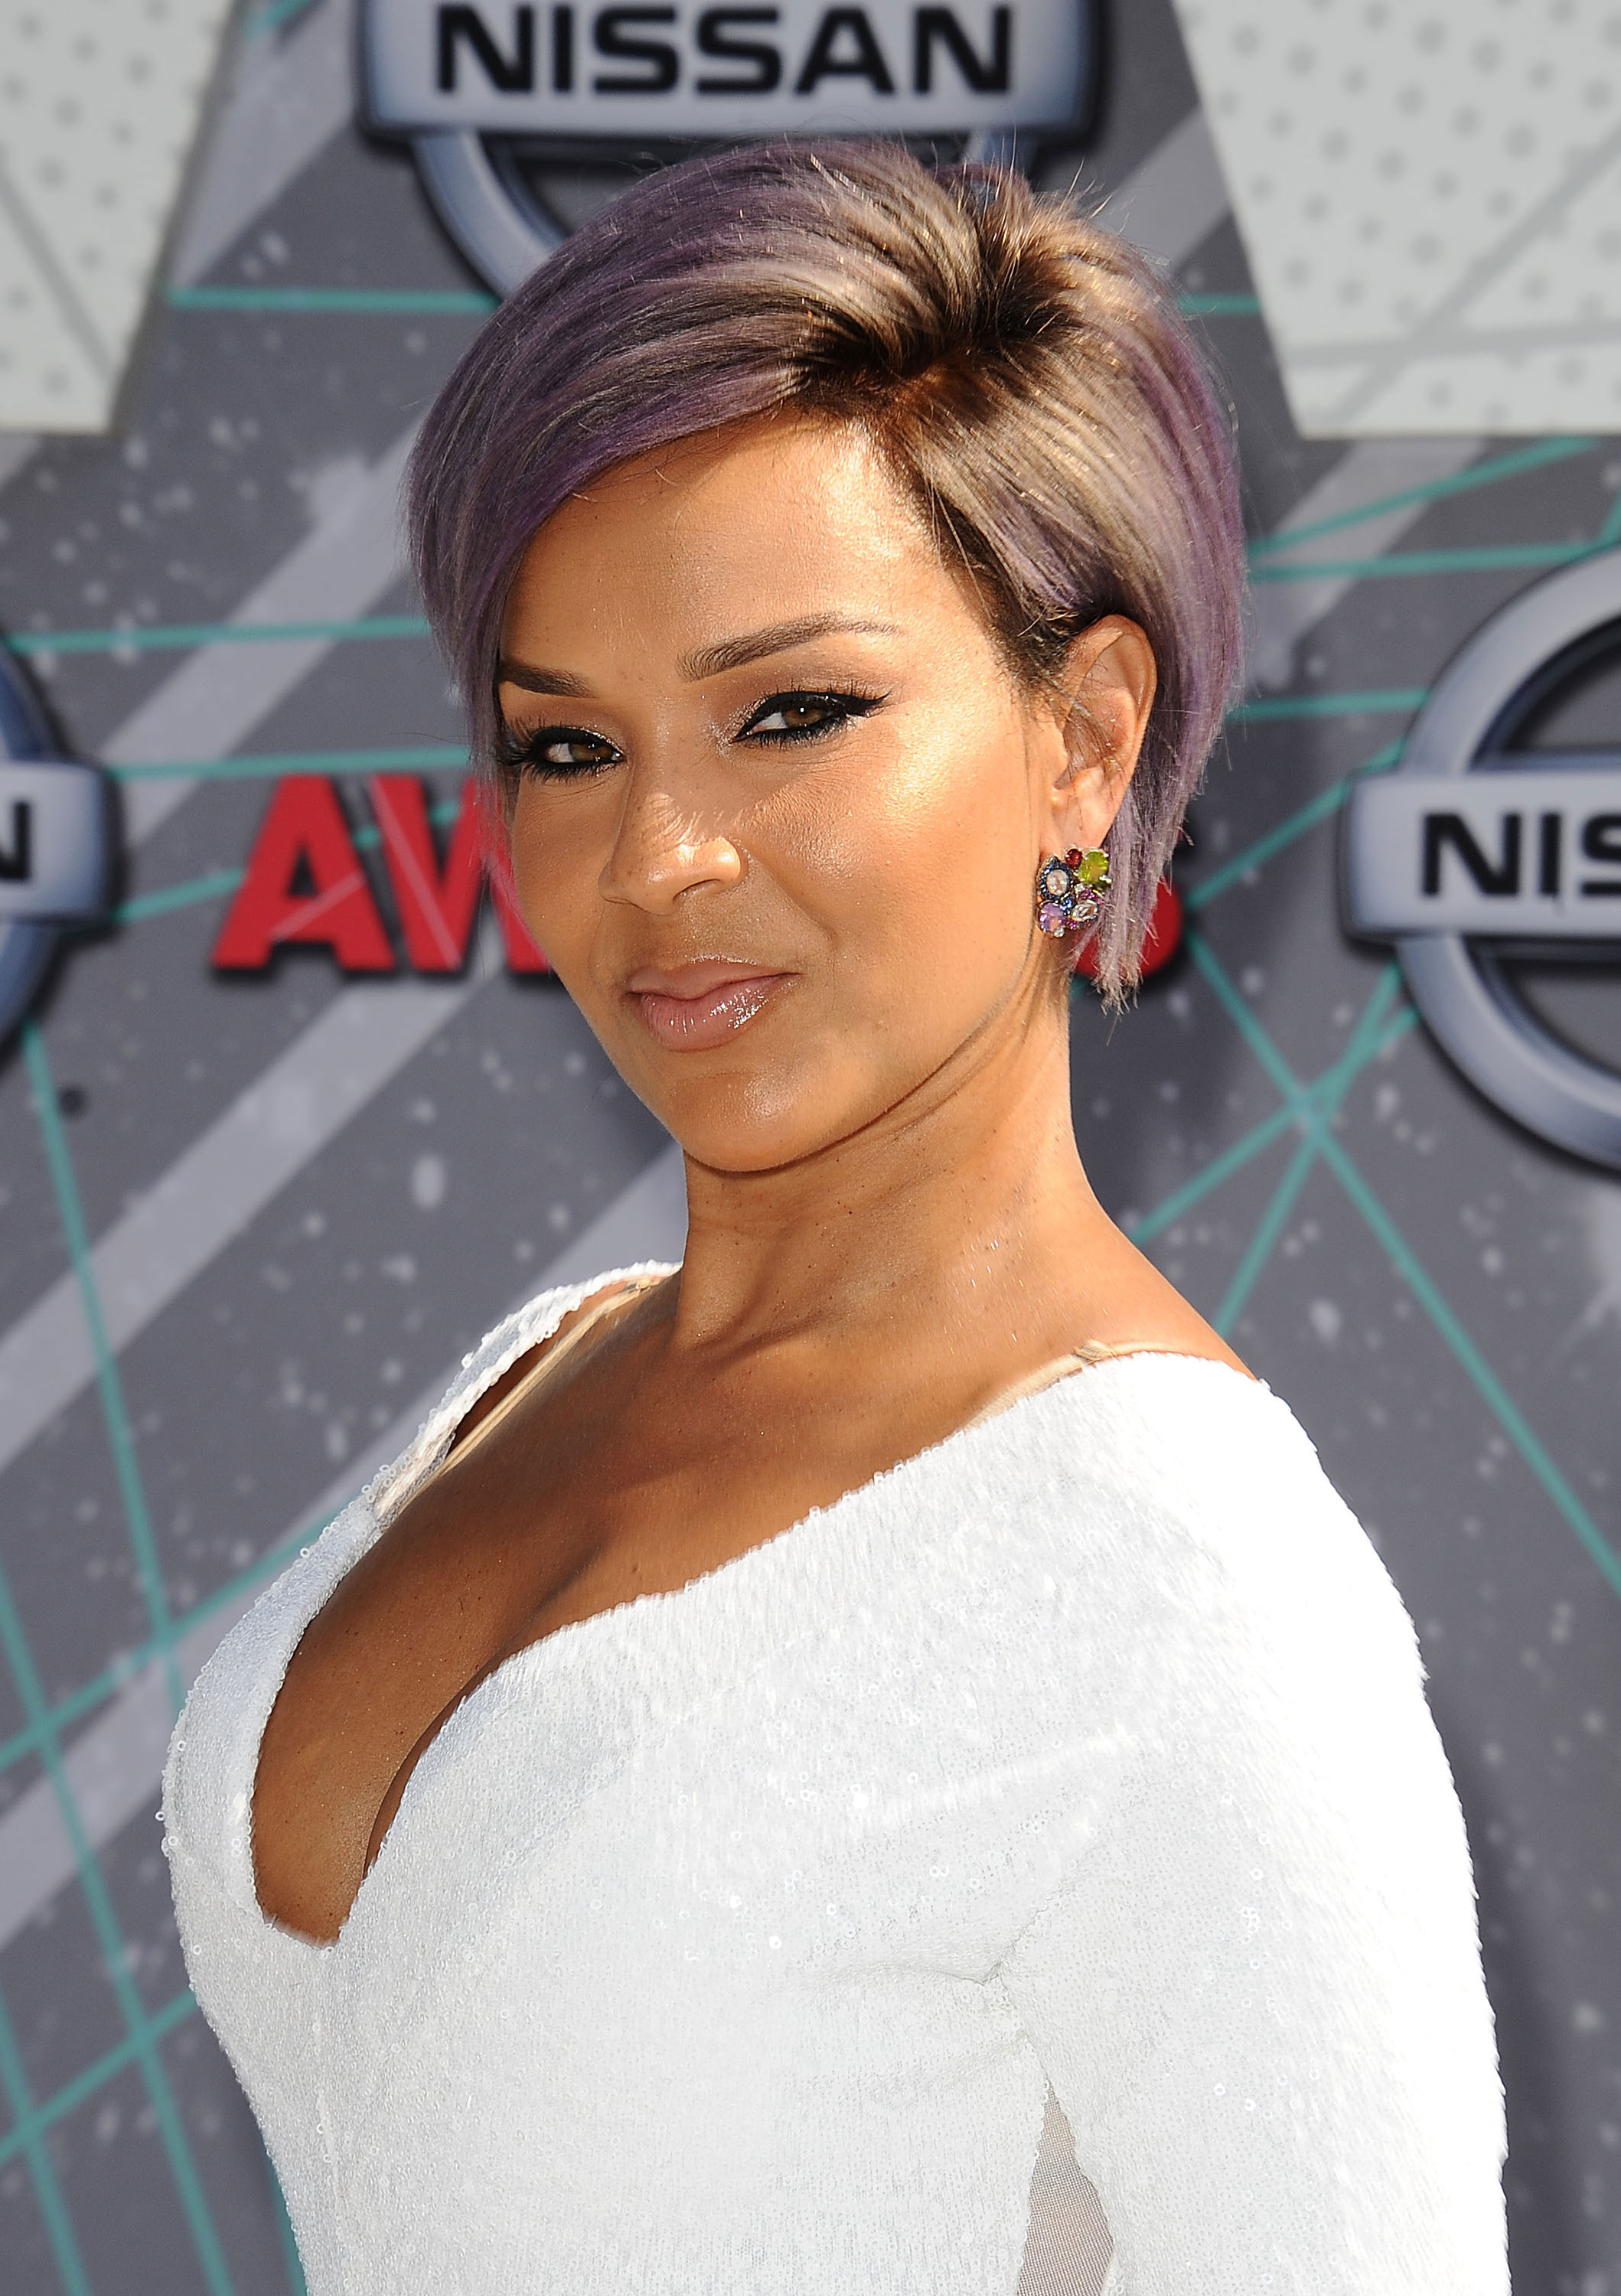 LisaRaye McCoy Says Duane Martin is one of the reasons of Ex-Husband Cheated On Her